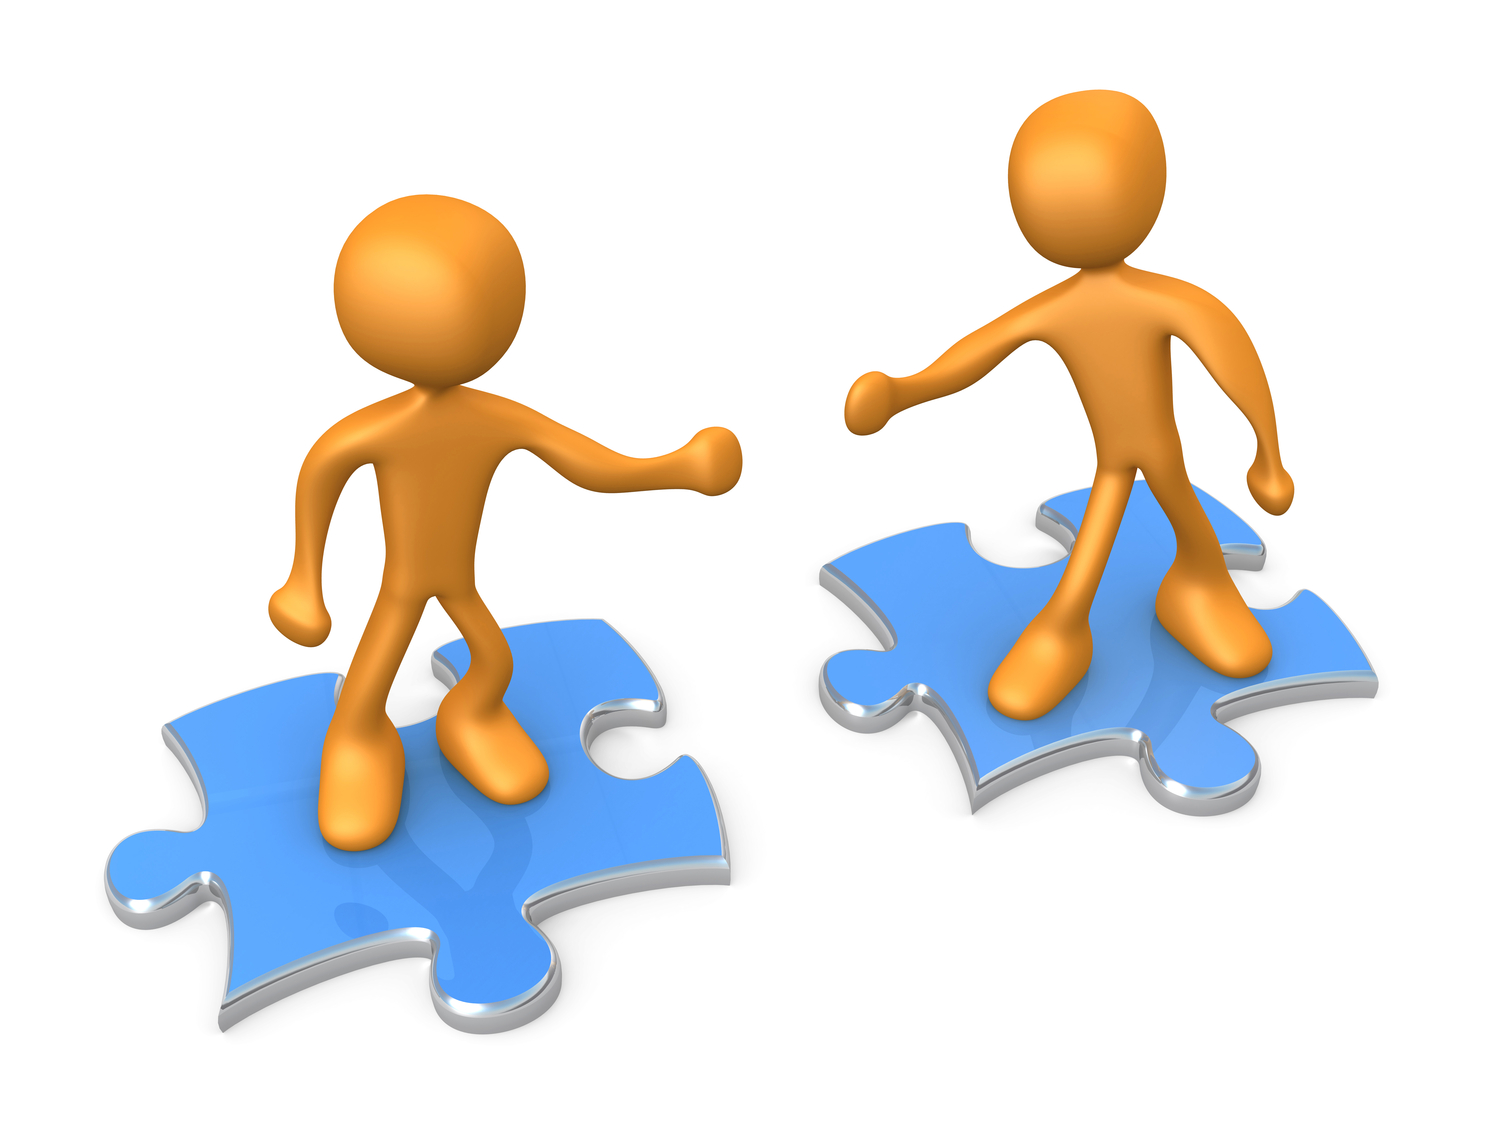 Royalty-free 3d business clipart picture of two orange people on blue puzzle pieces, reaching out for eachother to connect, symbolizing a connection, link exchange and teamwork.